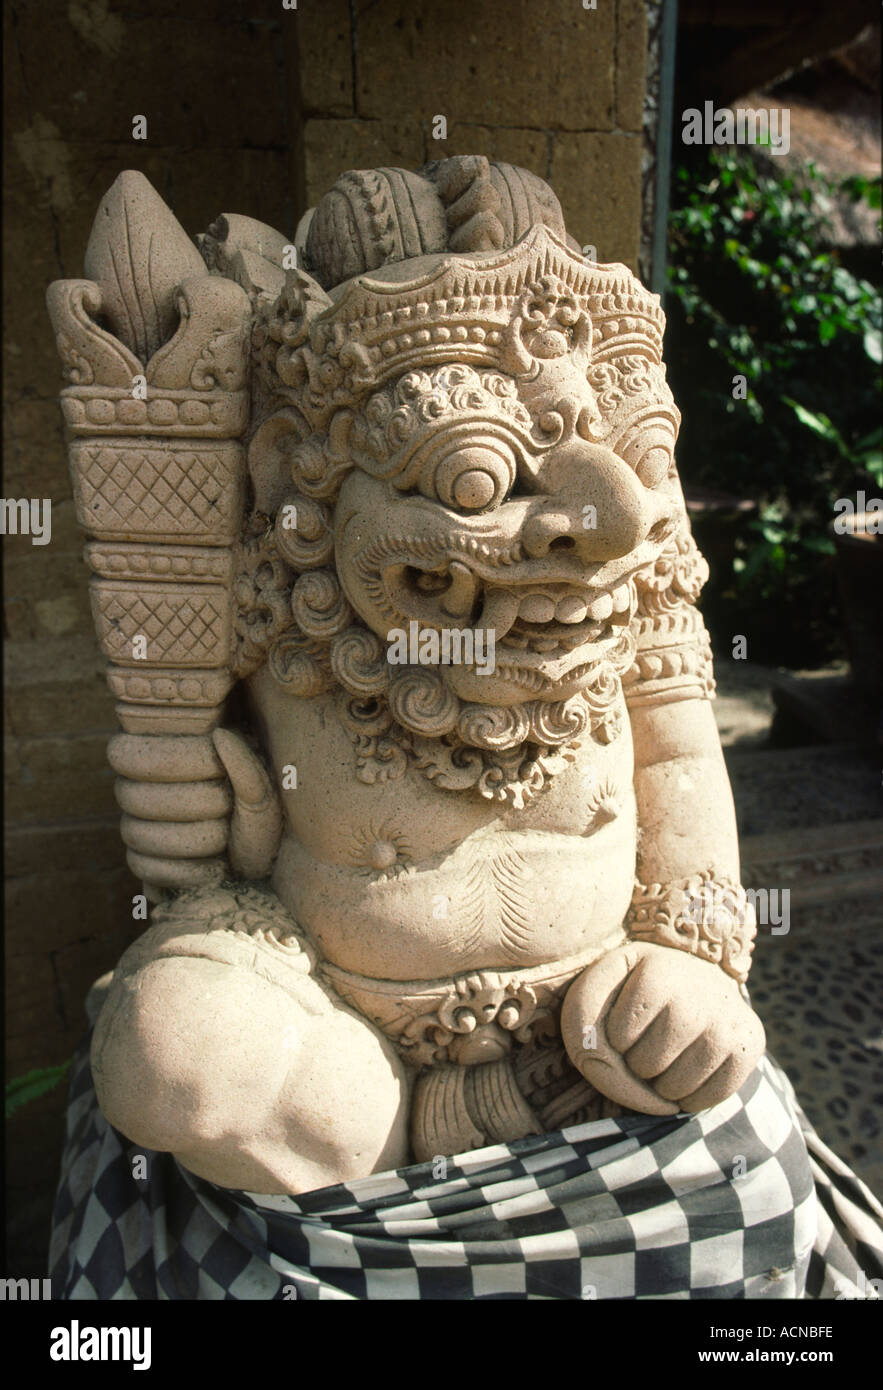 Indonesia bali craft stone carving sculpture of